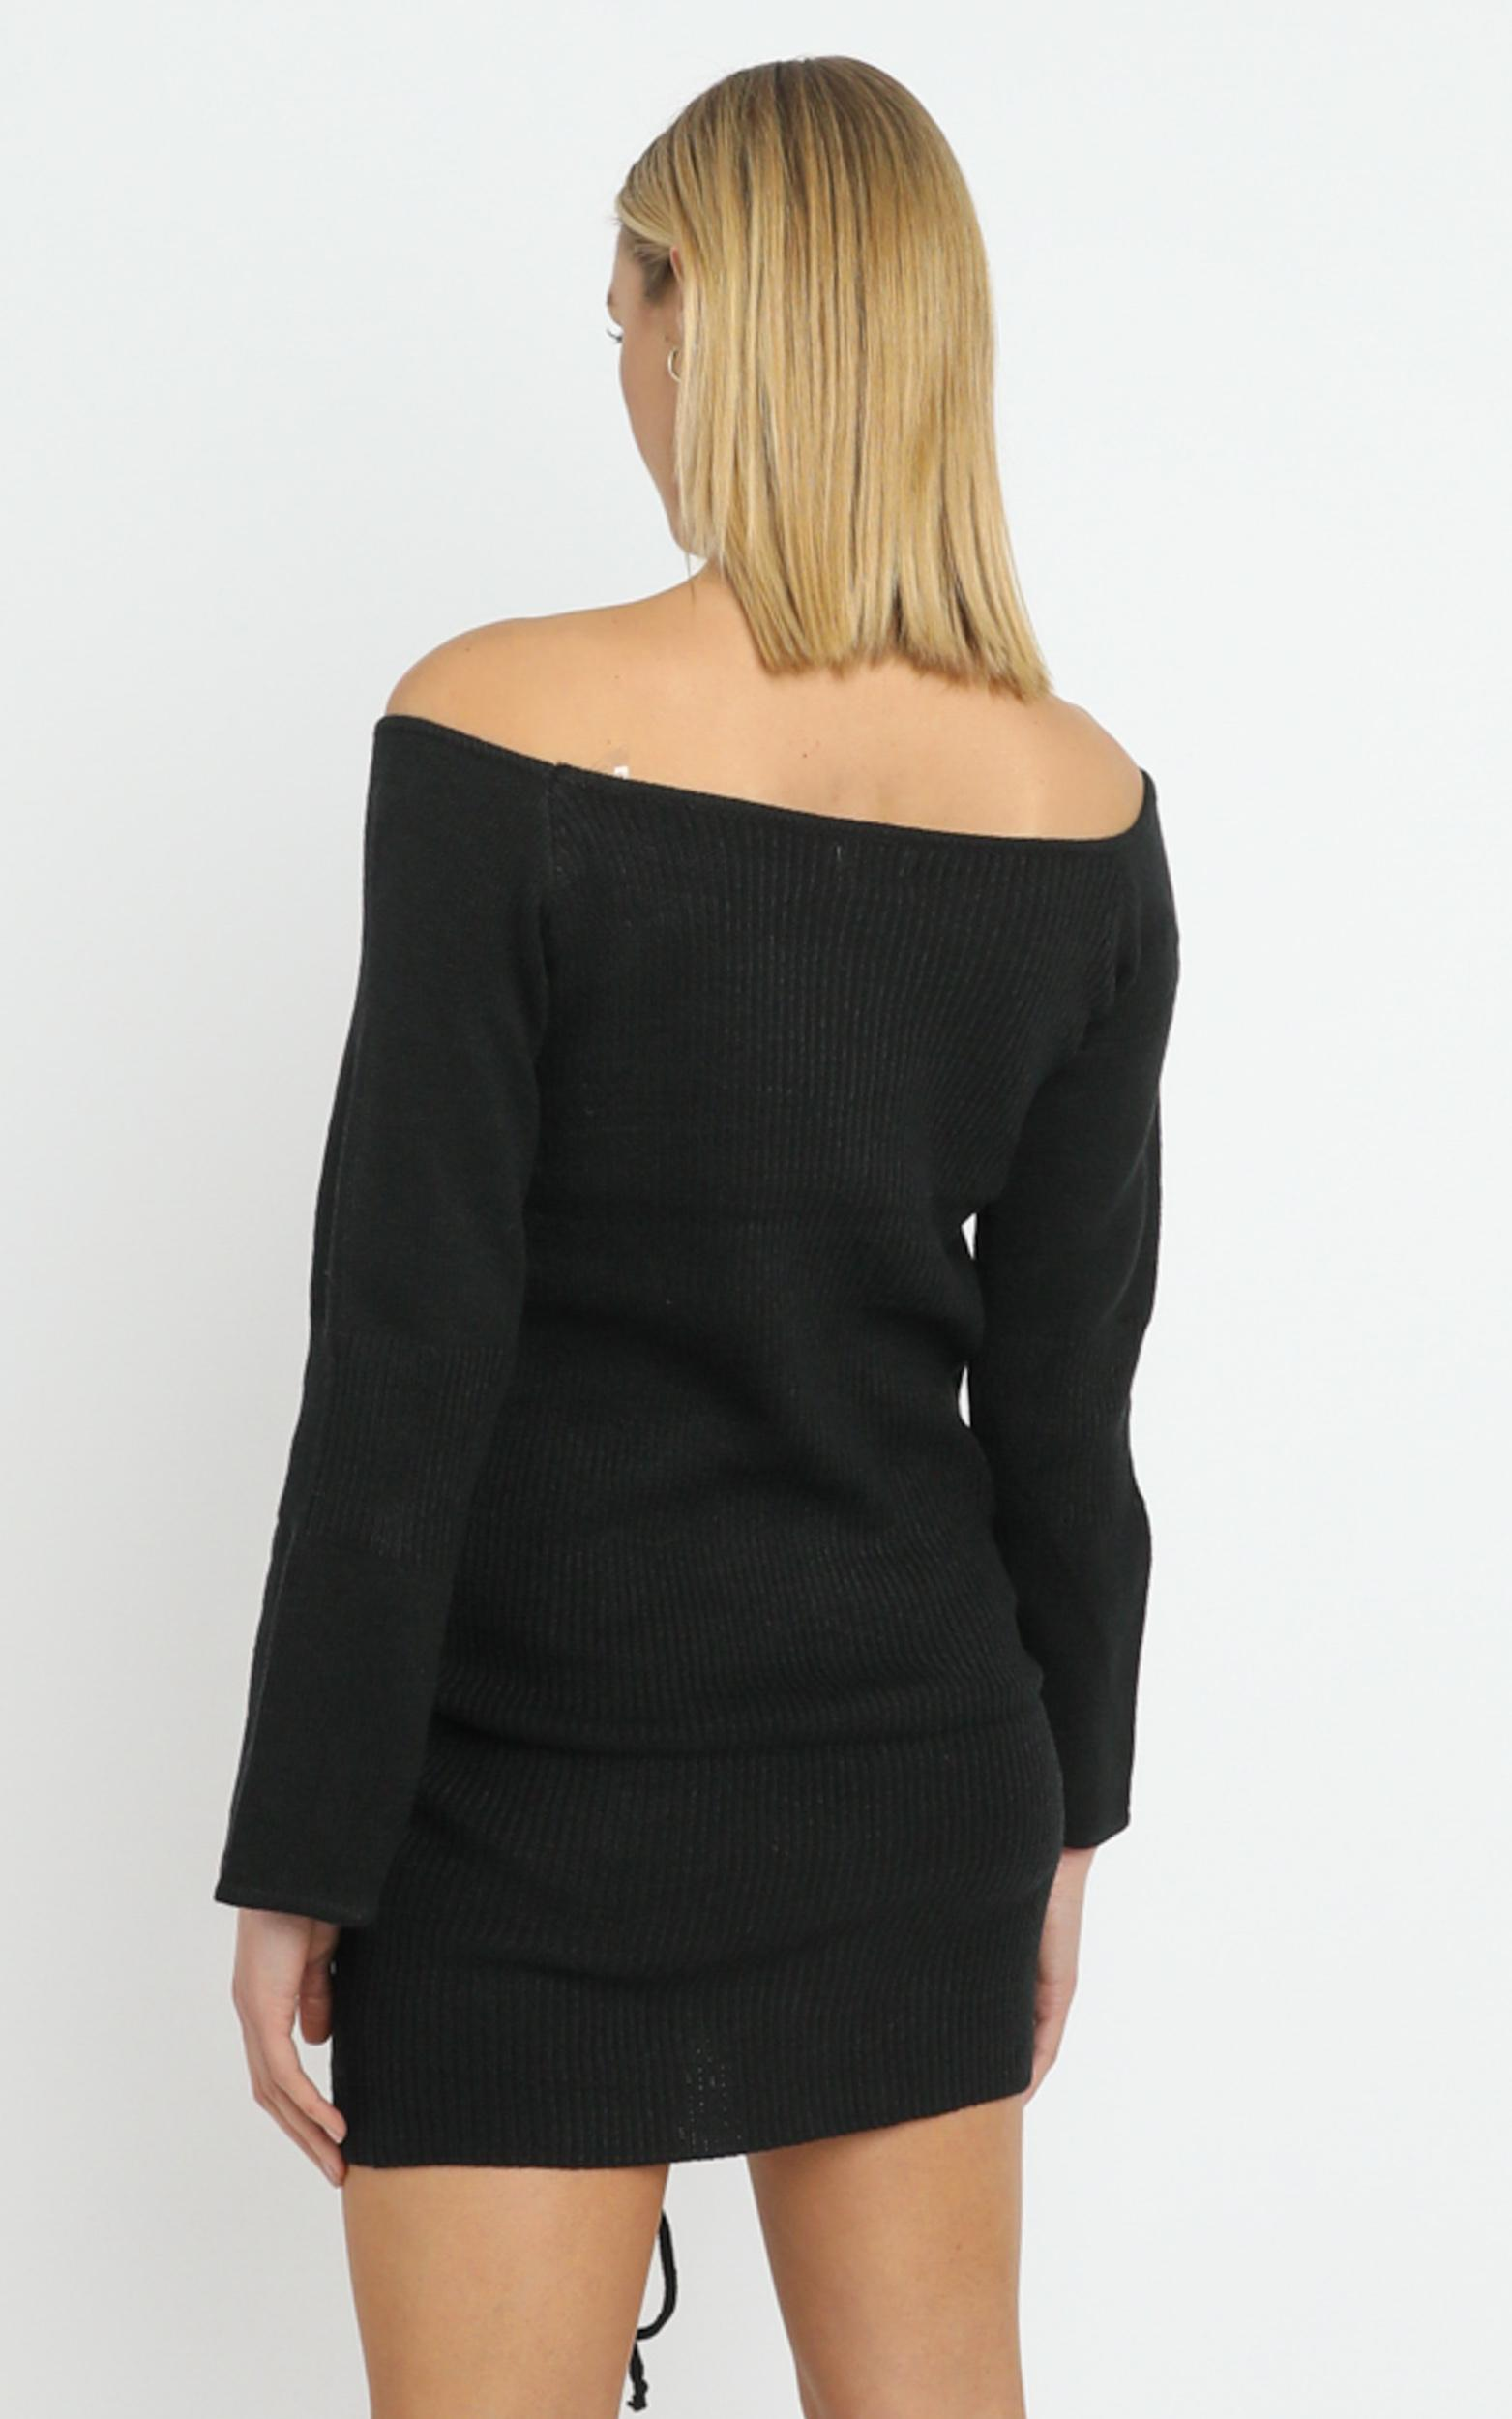 Susie Ruched Front Knit Dress in Black - 12 (L), Black, hi-res image number null